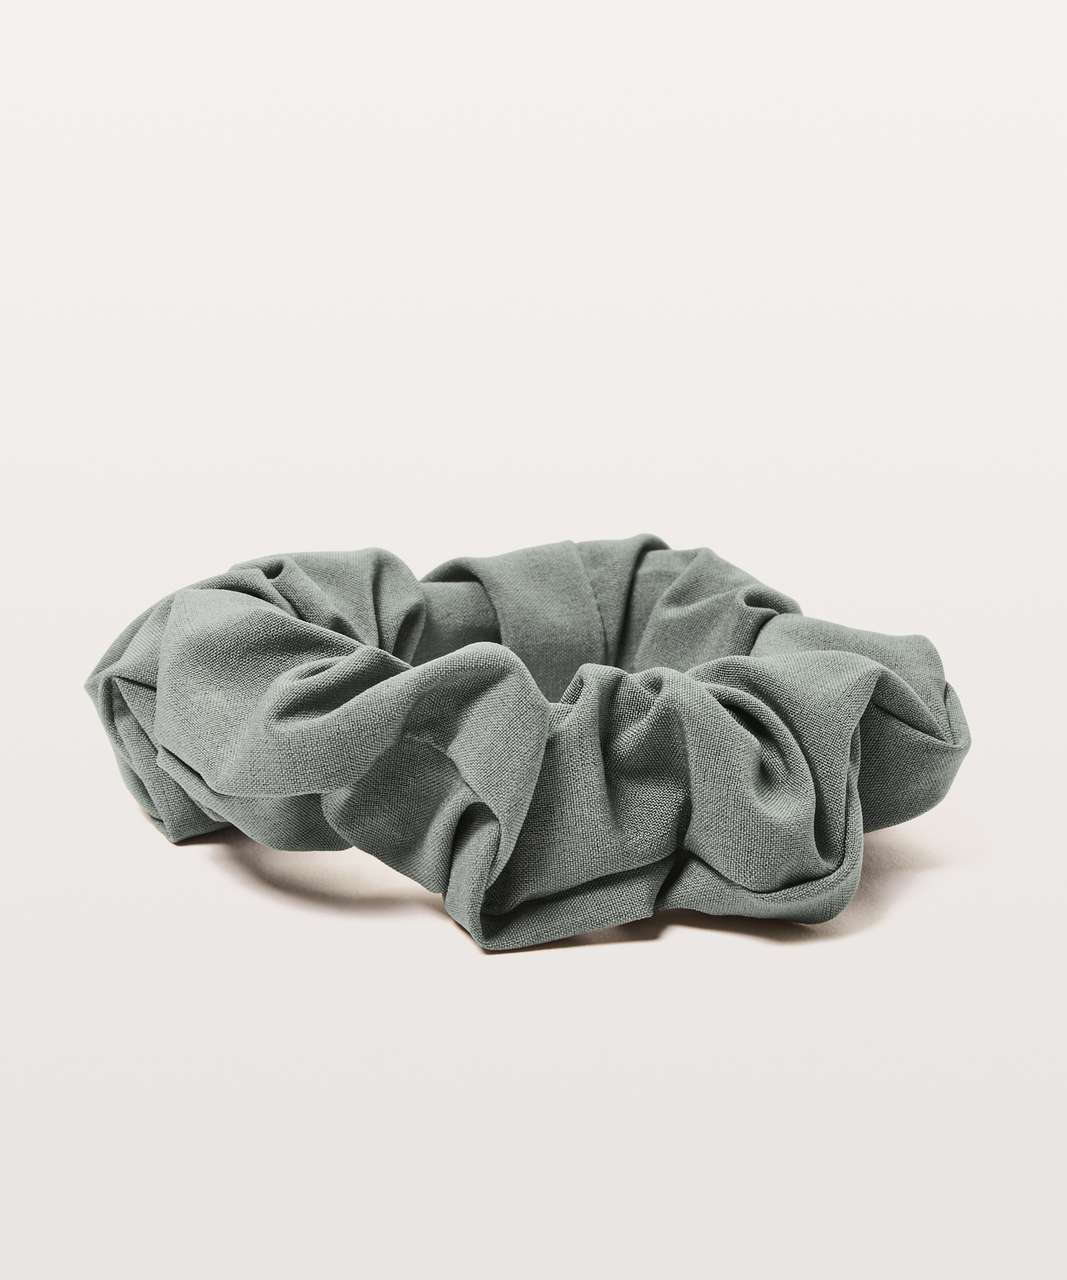 Lululemon Uplifting Scrunchie - Misty Meadow